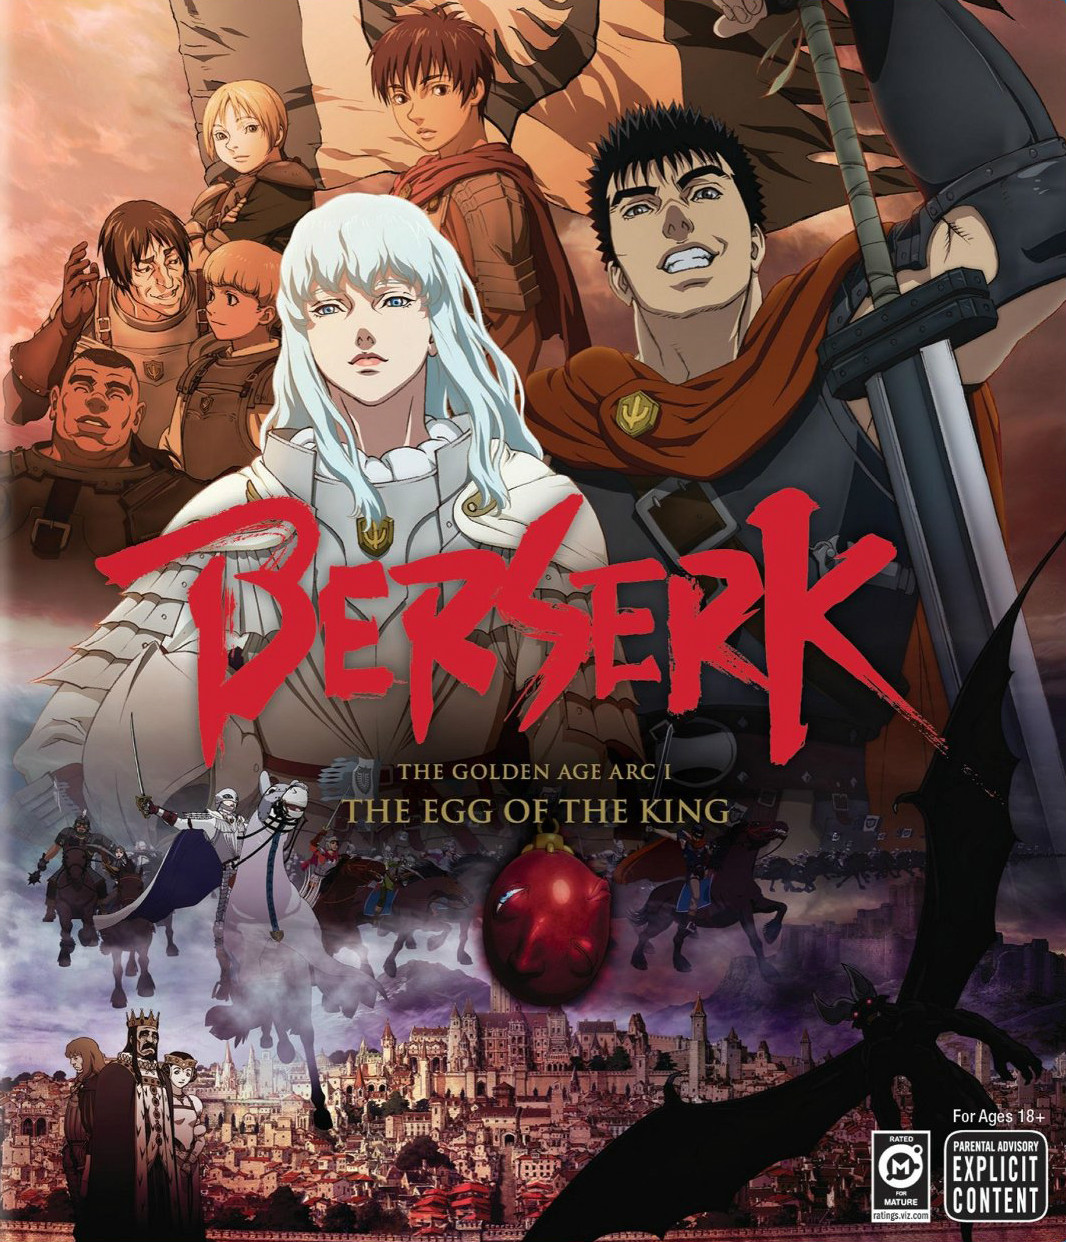 berserk golden age arc i the Watch berserk: the golden age arc 1 - the egg of the king movies online streaming, streaming berserk: the golden age arc 1 - the egg of the king movies online, berserk: the golden age arc 1 - the egg of the king free movies online streaming.